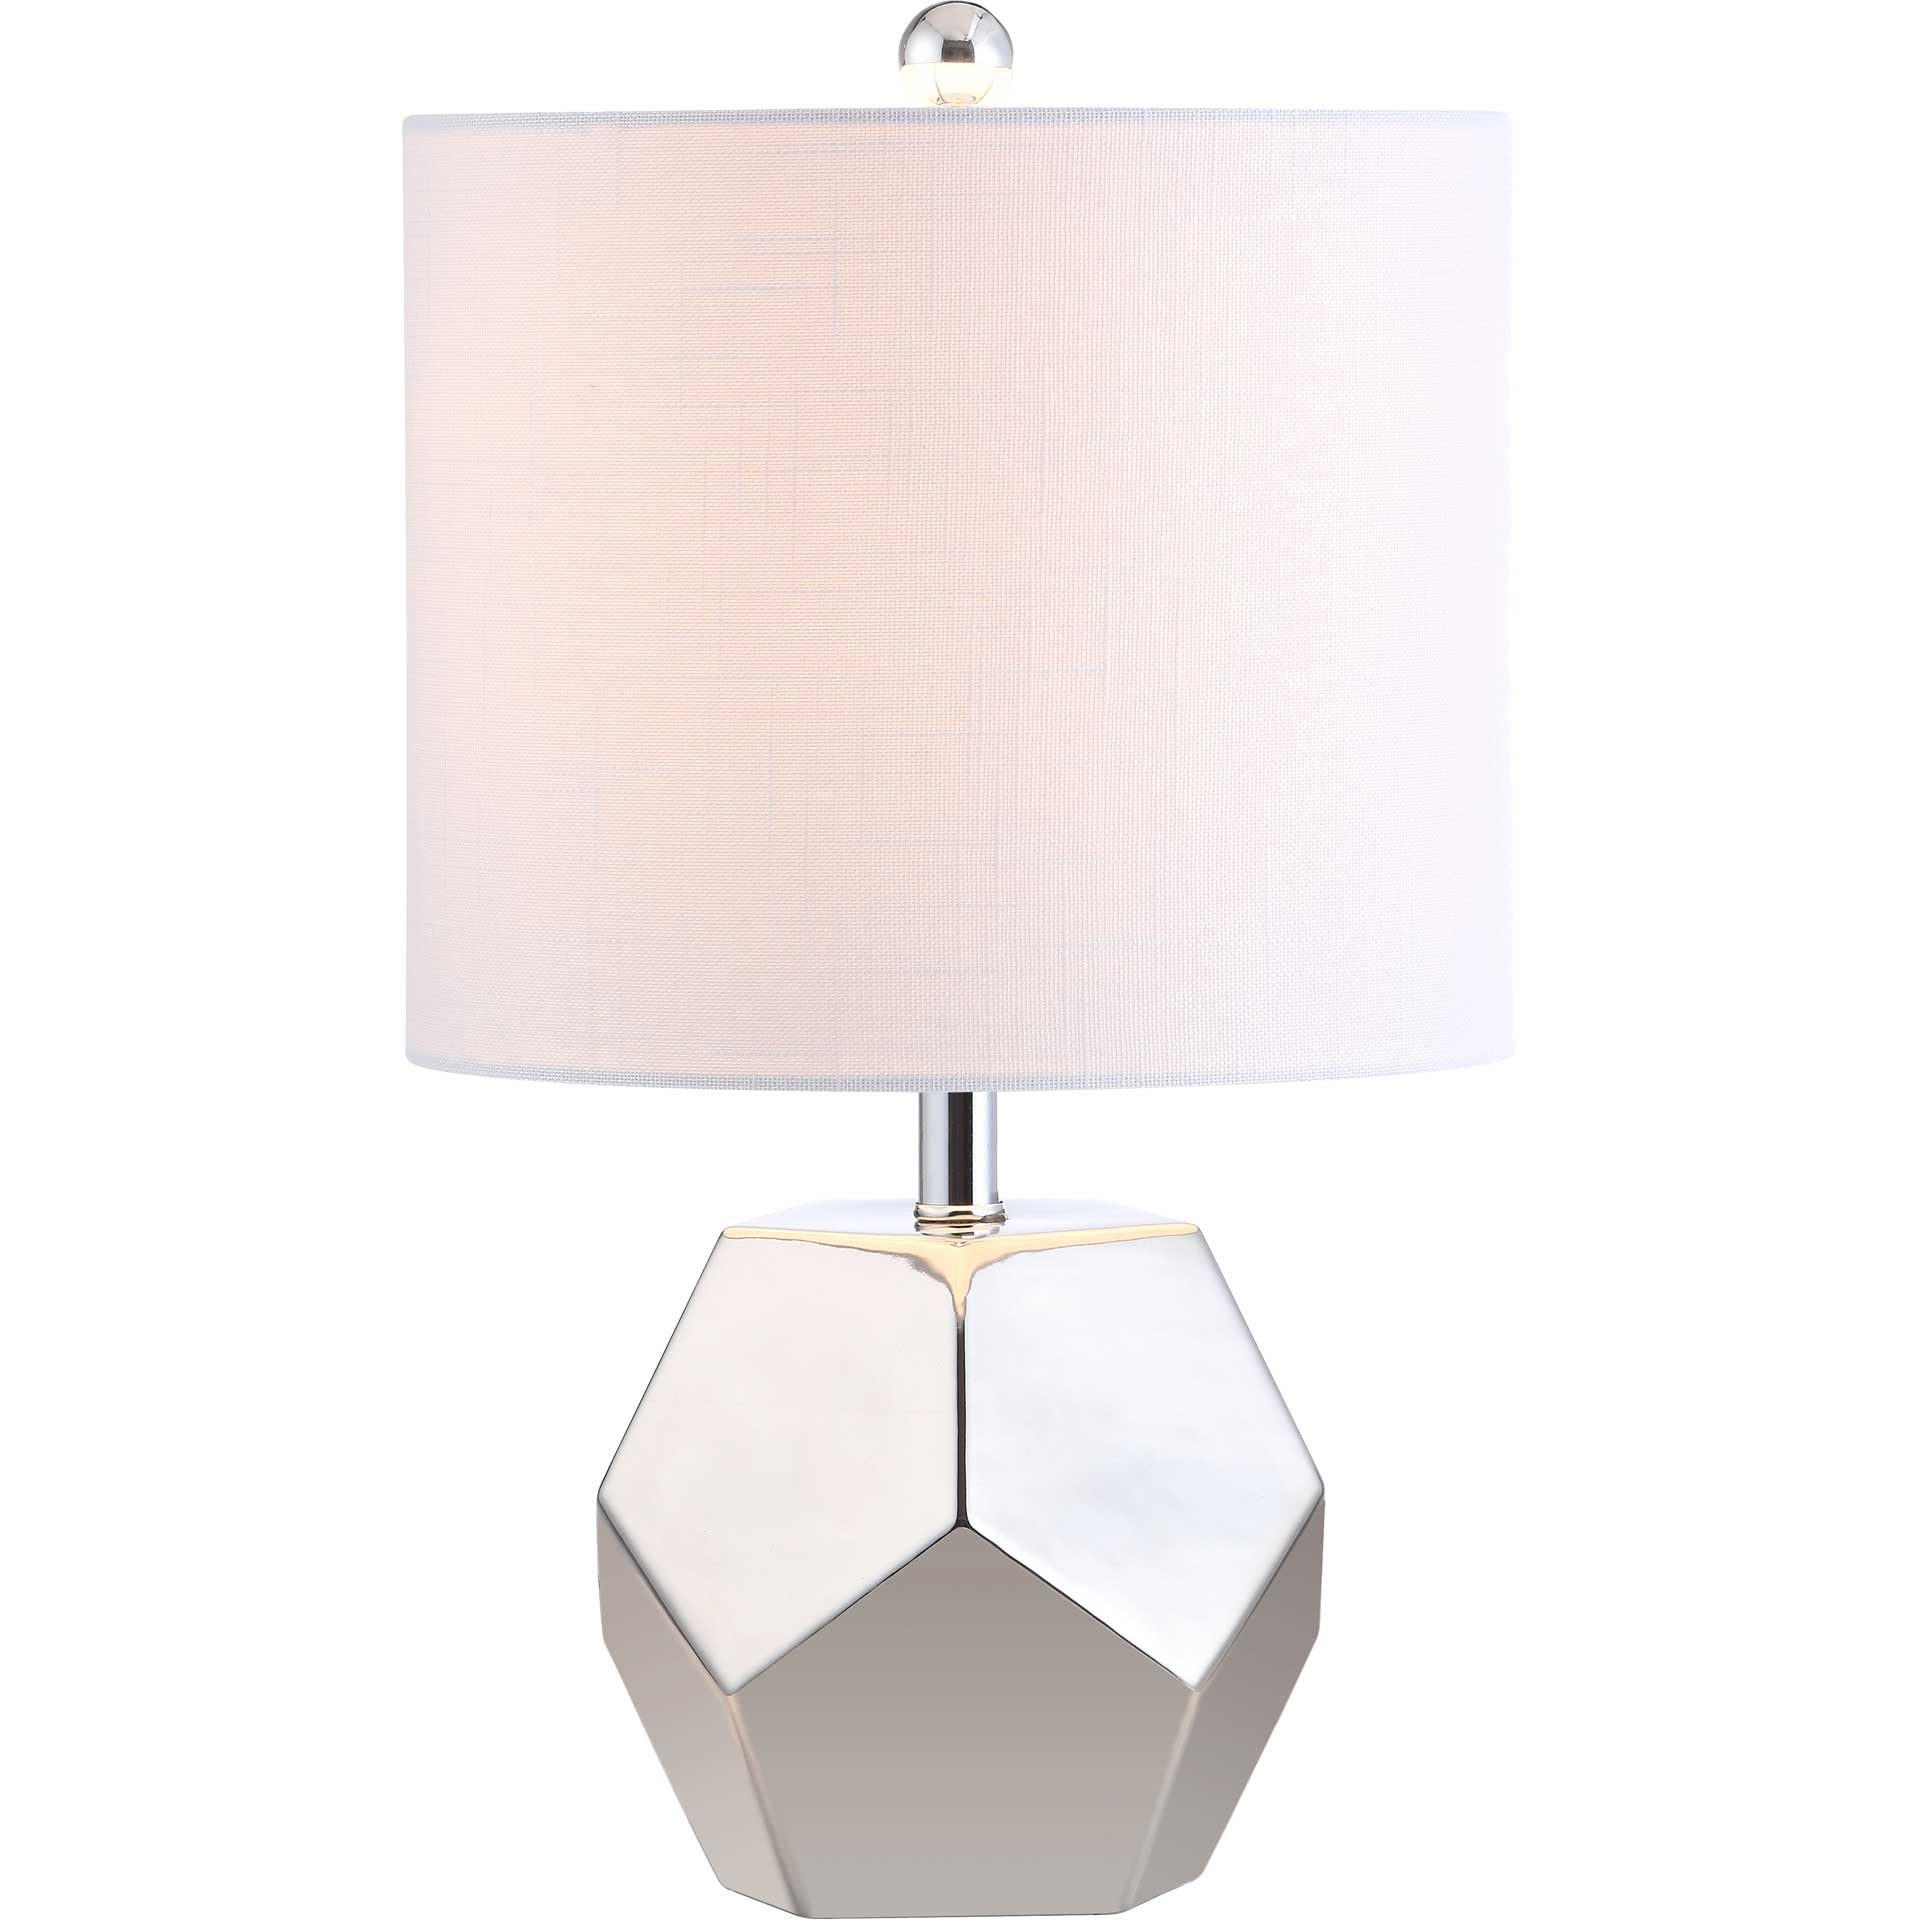 Hamilton Table Lamp Plated Silver